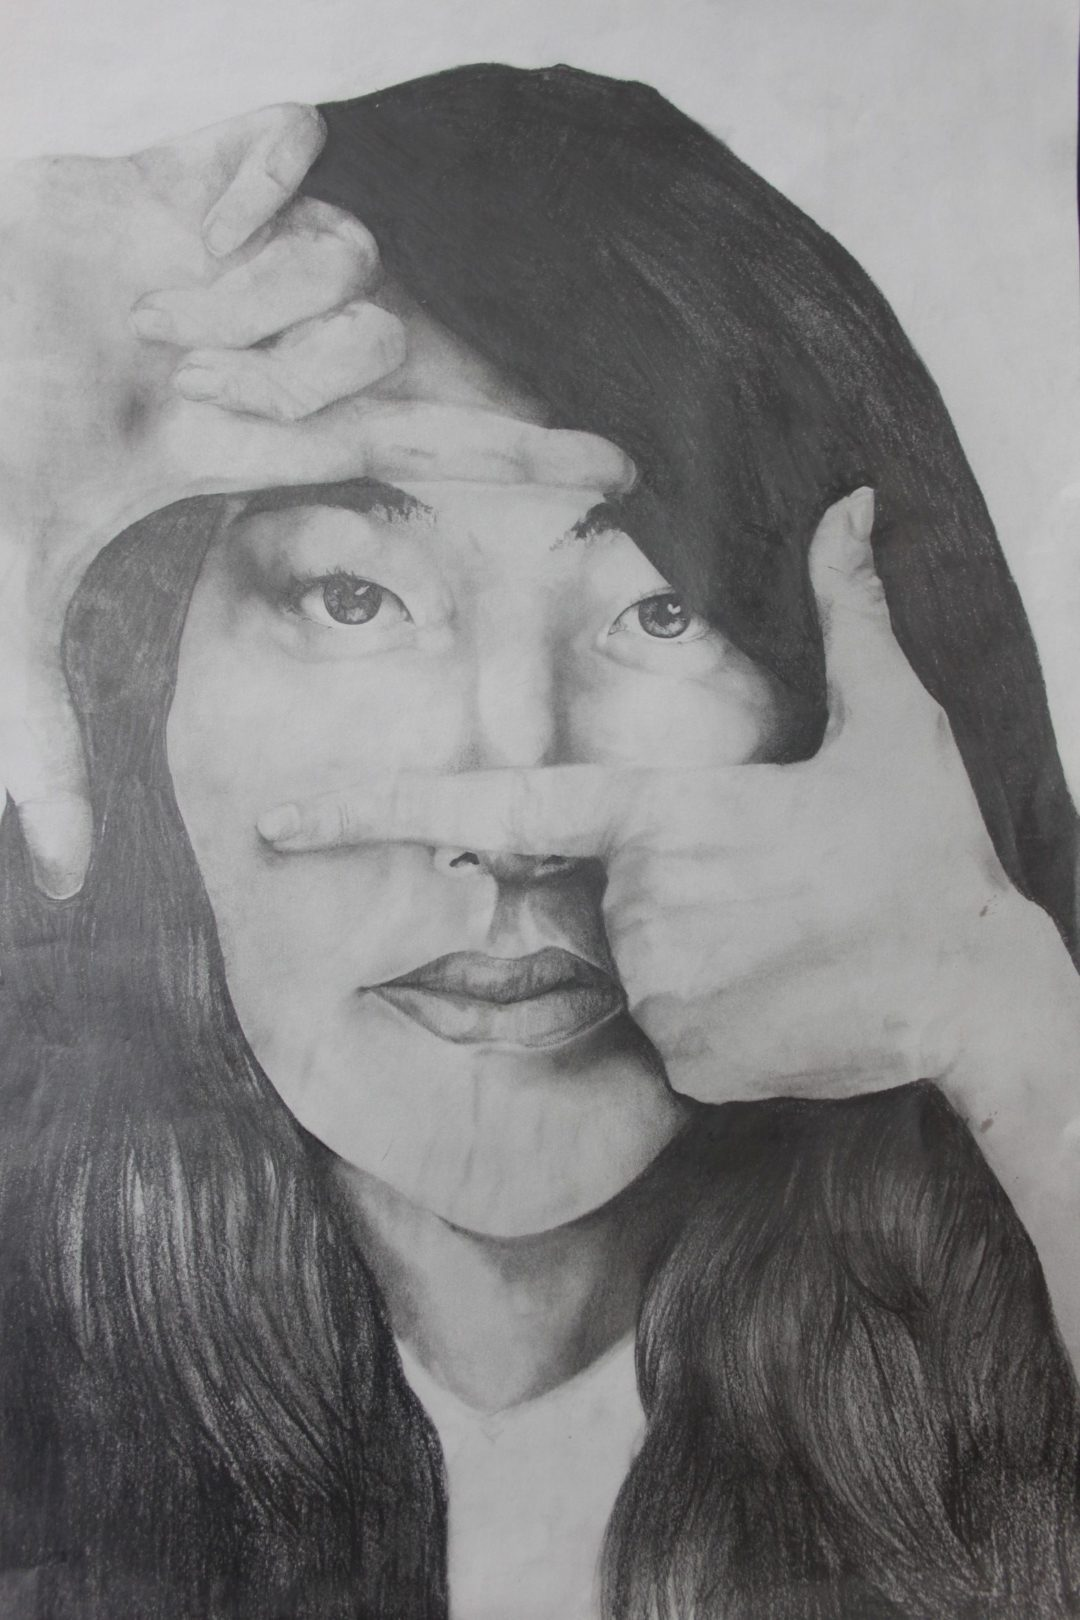 Elysia Stent's self-portrait